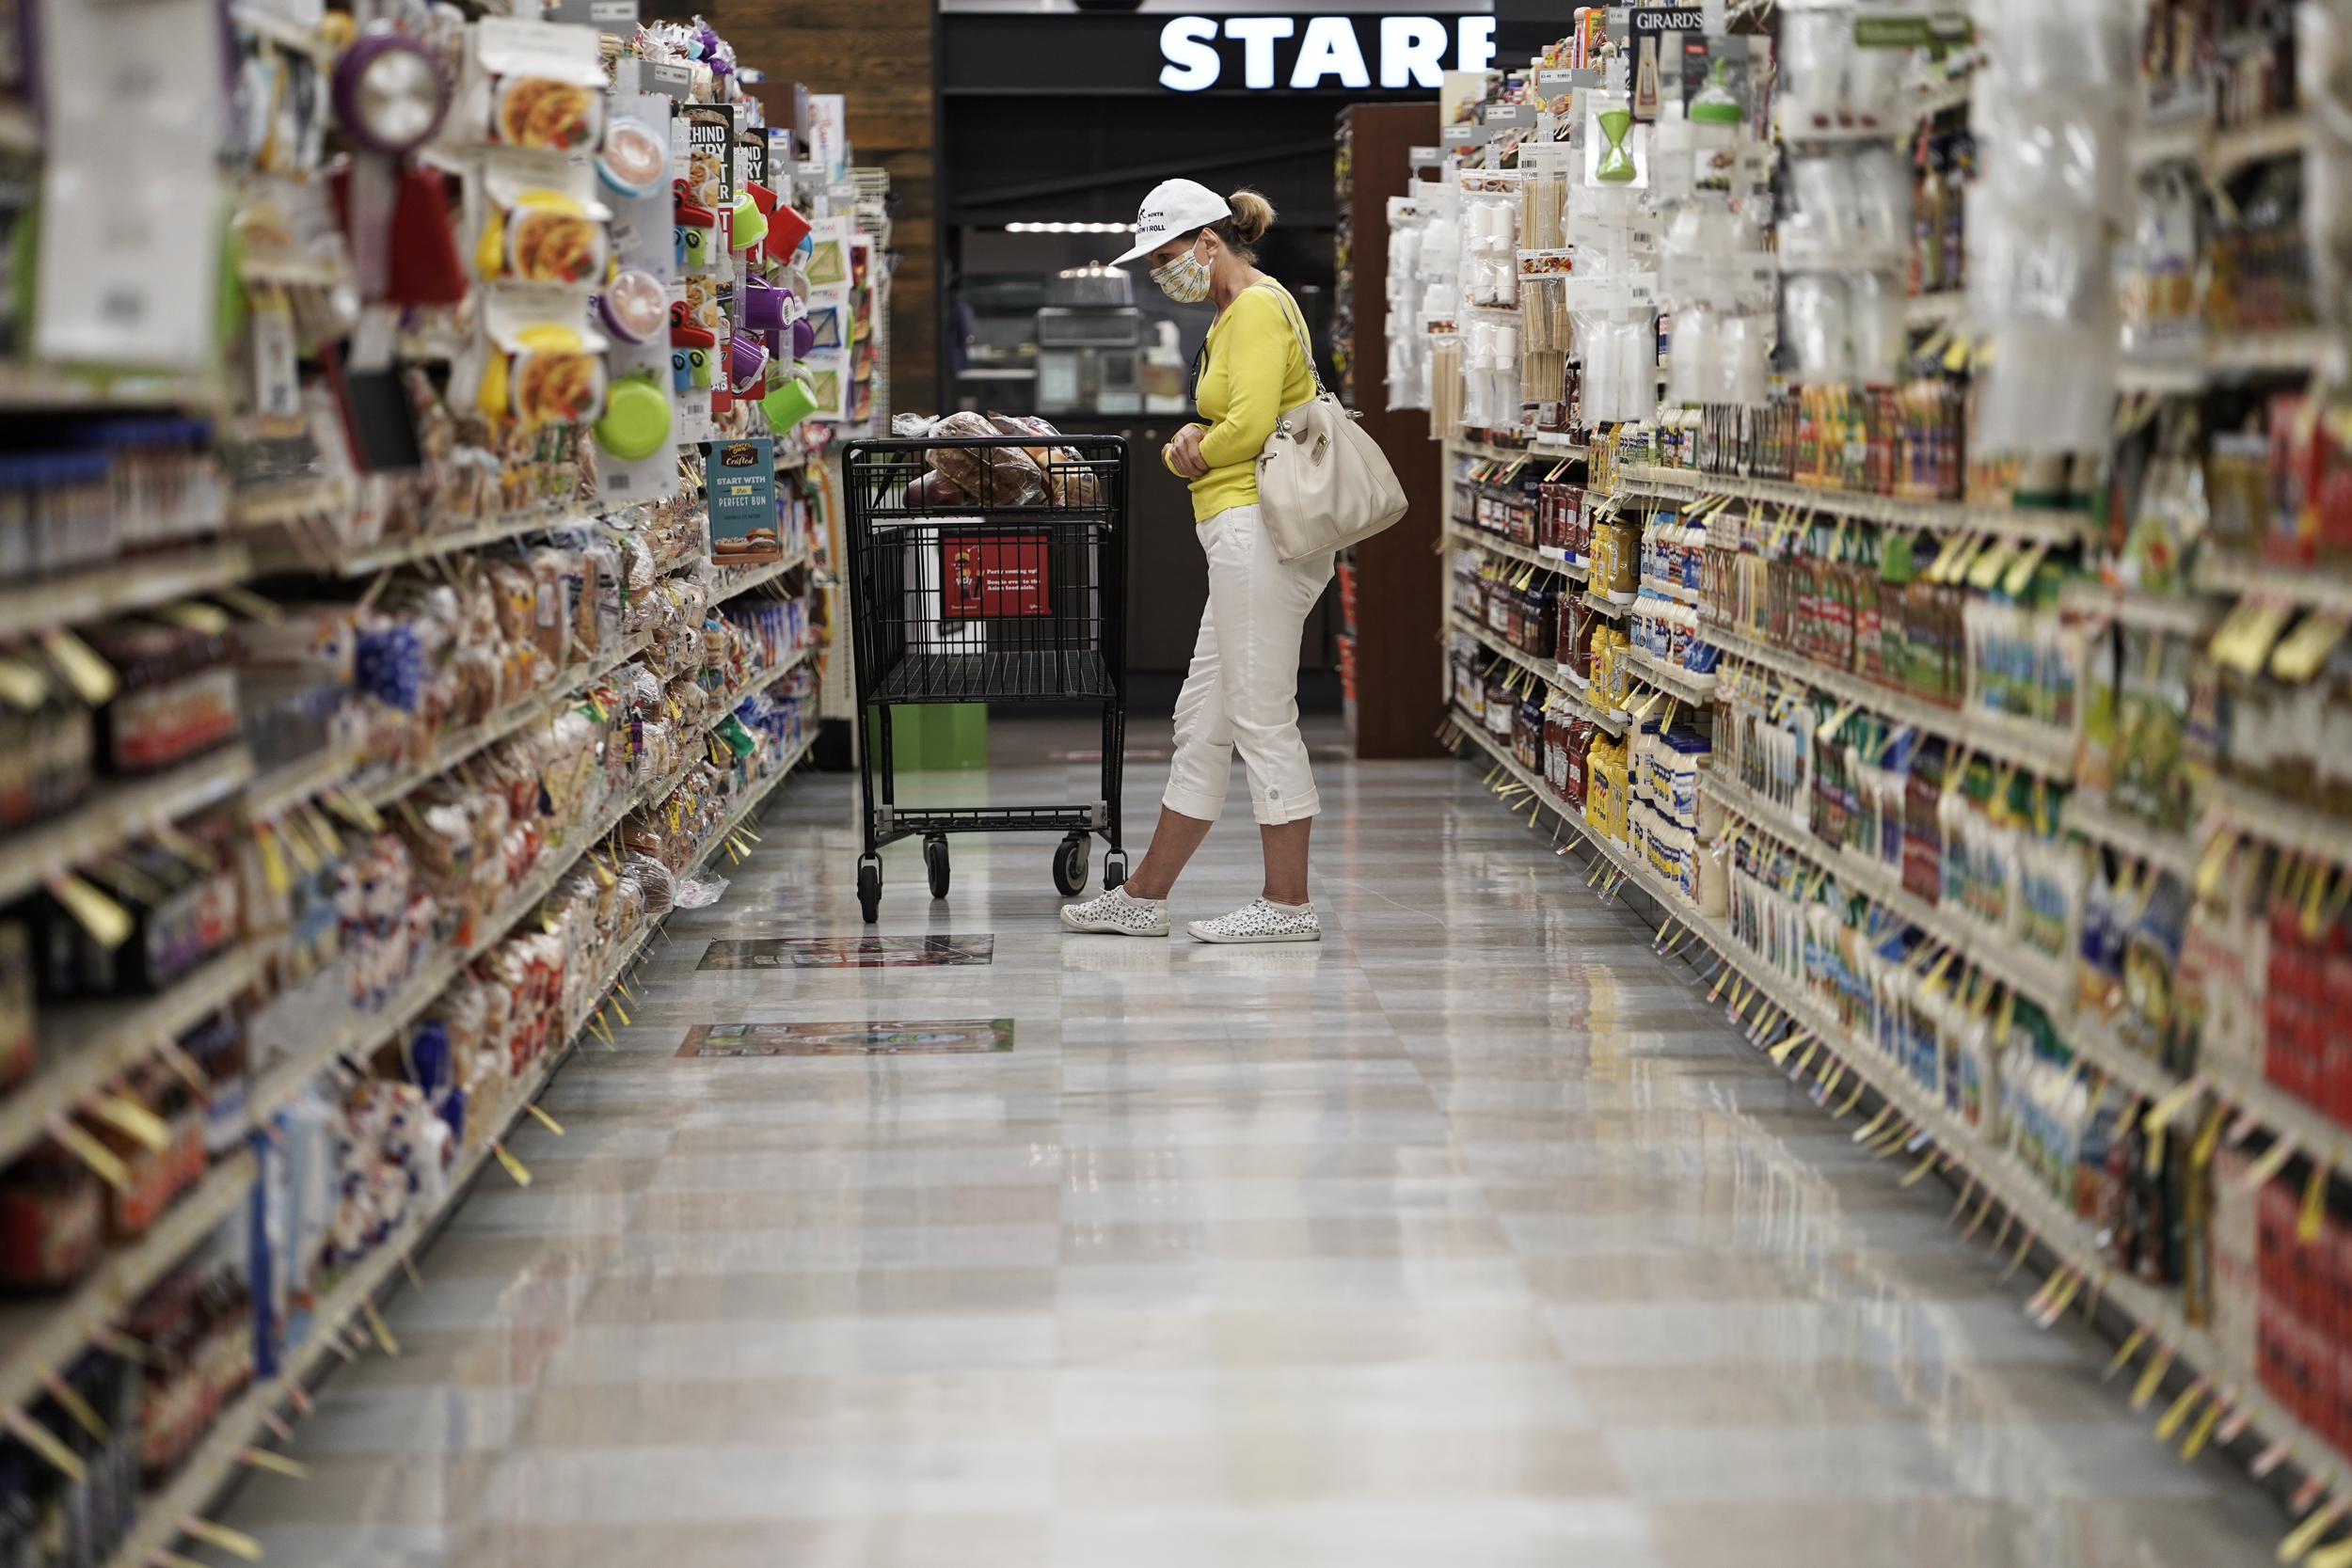 Consumer prices rose 5.4 percent in July as pandemic disruptions continue